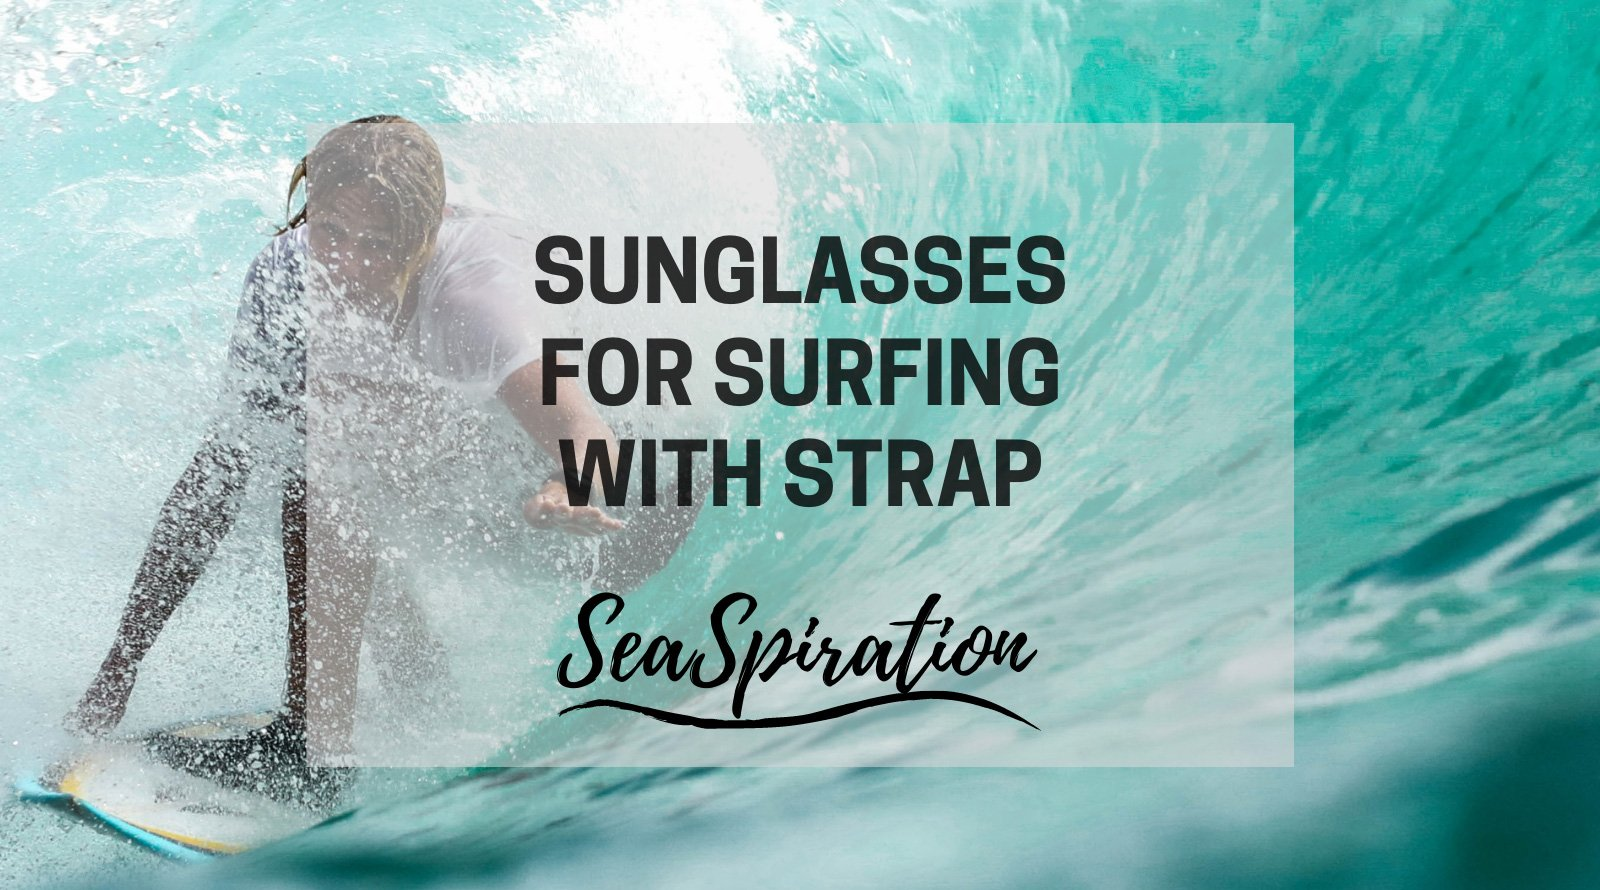 Surf sunglasses with strap